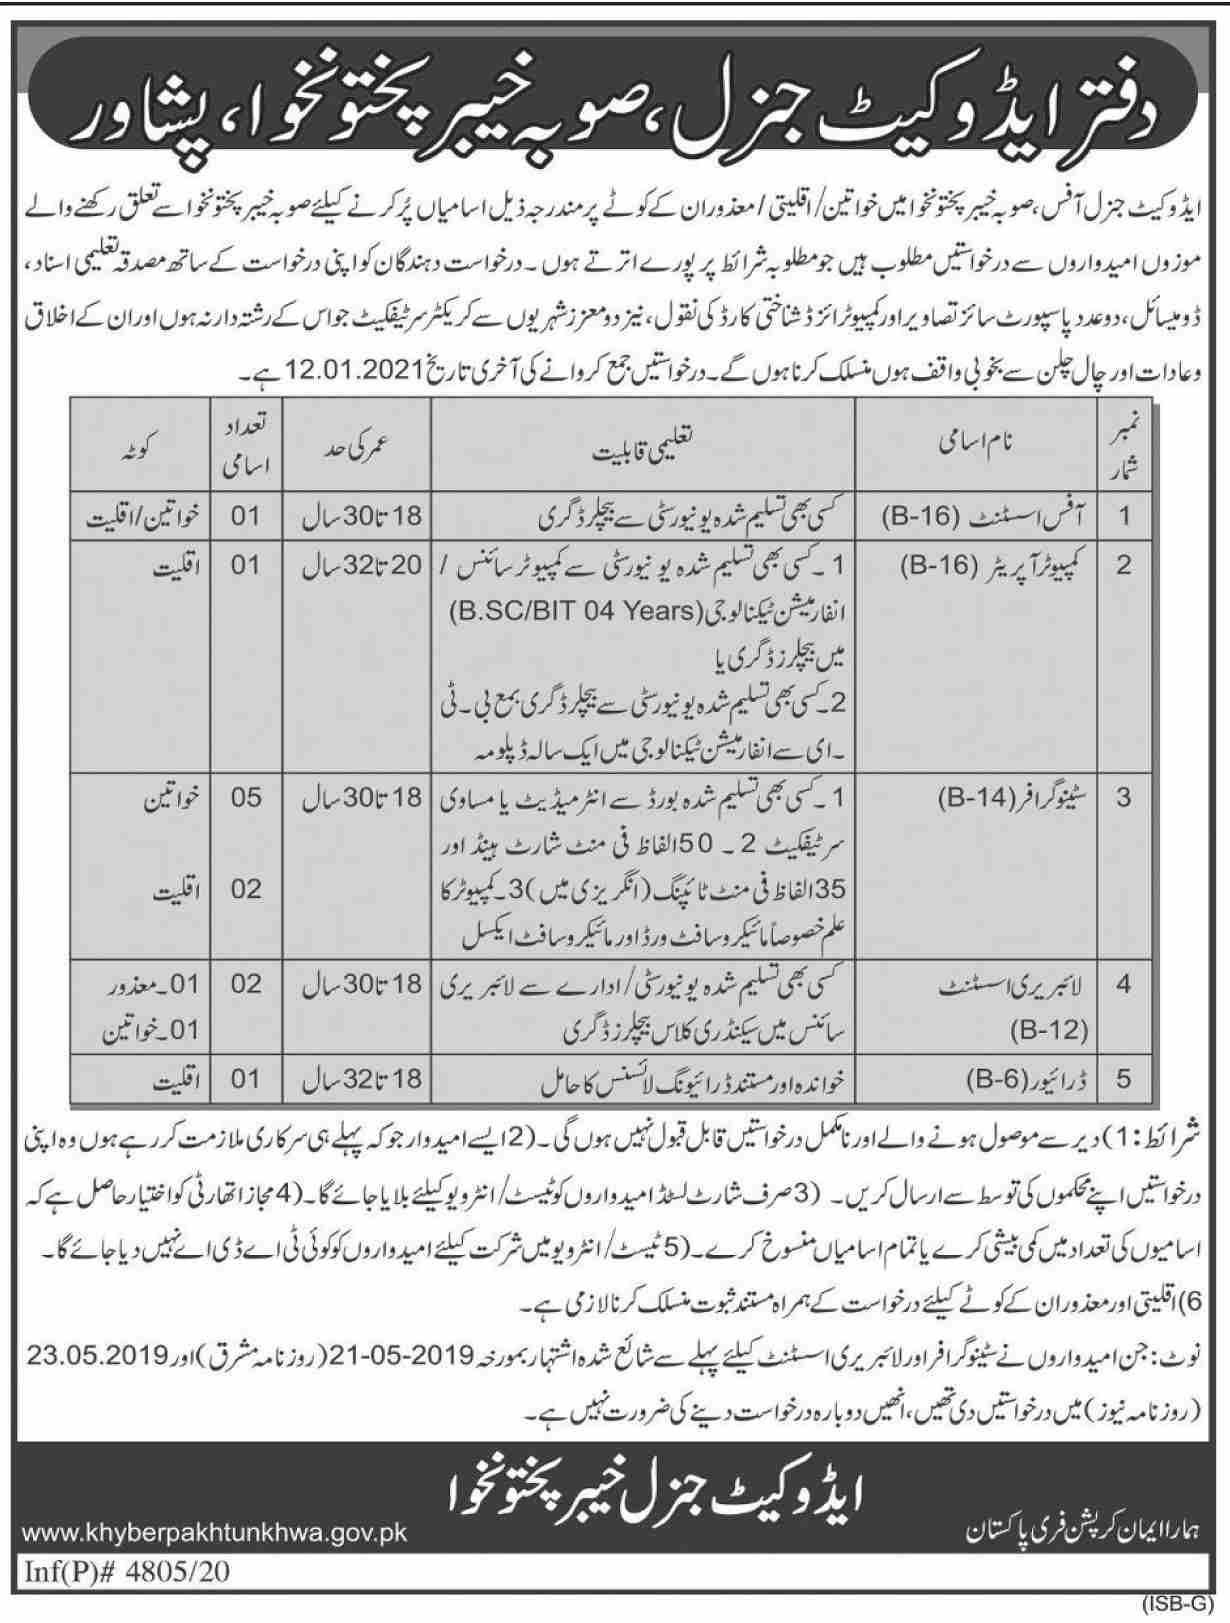 Office of the Advocate General Jobs - Jobs for Middle, Matric, Intermediate Degree, Bachelor Degree, Master Degree Candidates Apply Now